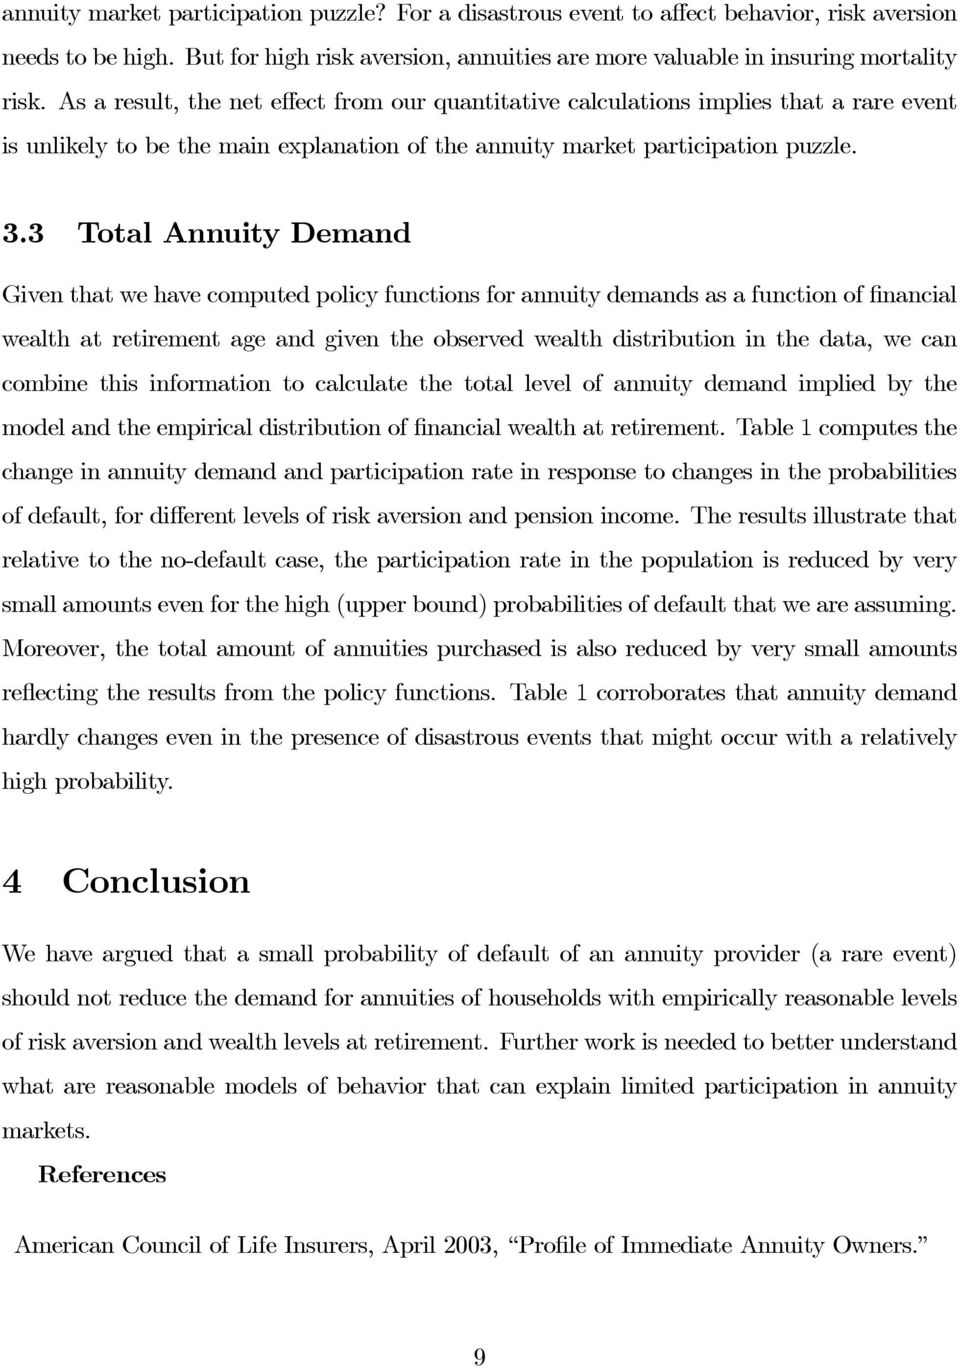 3 Total Annuity Demand Given that we have computed policy functions for annuity demands as a function of financial wealth at retirement age and given the observed wealth distribution in the data, we